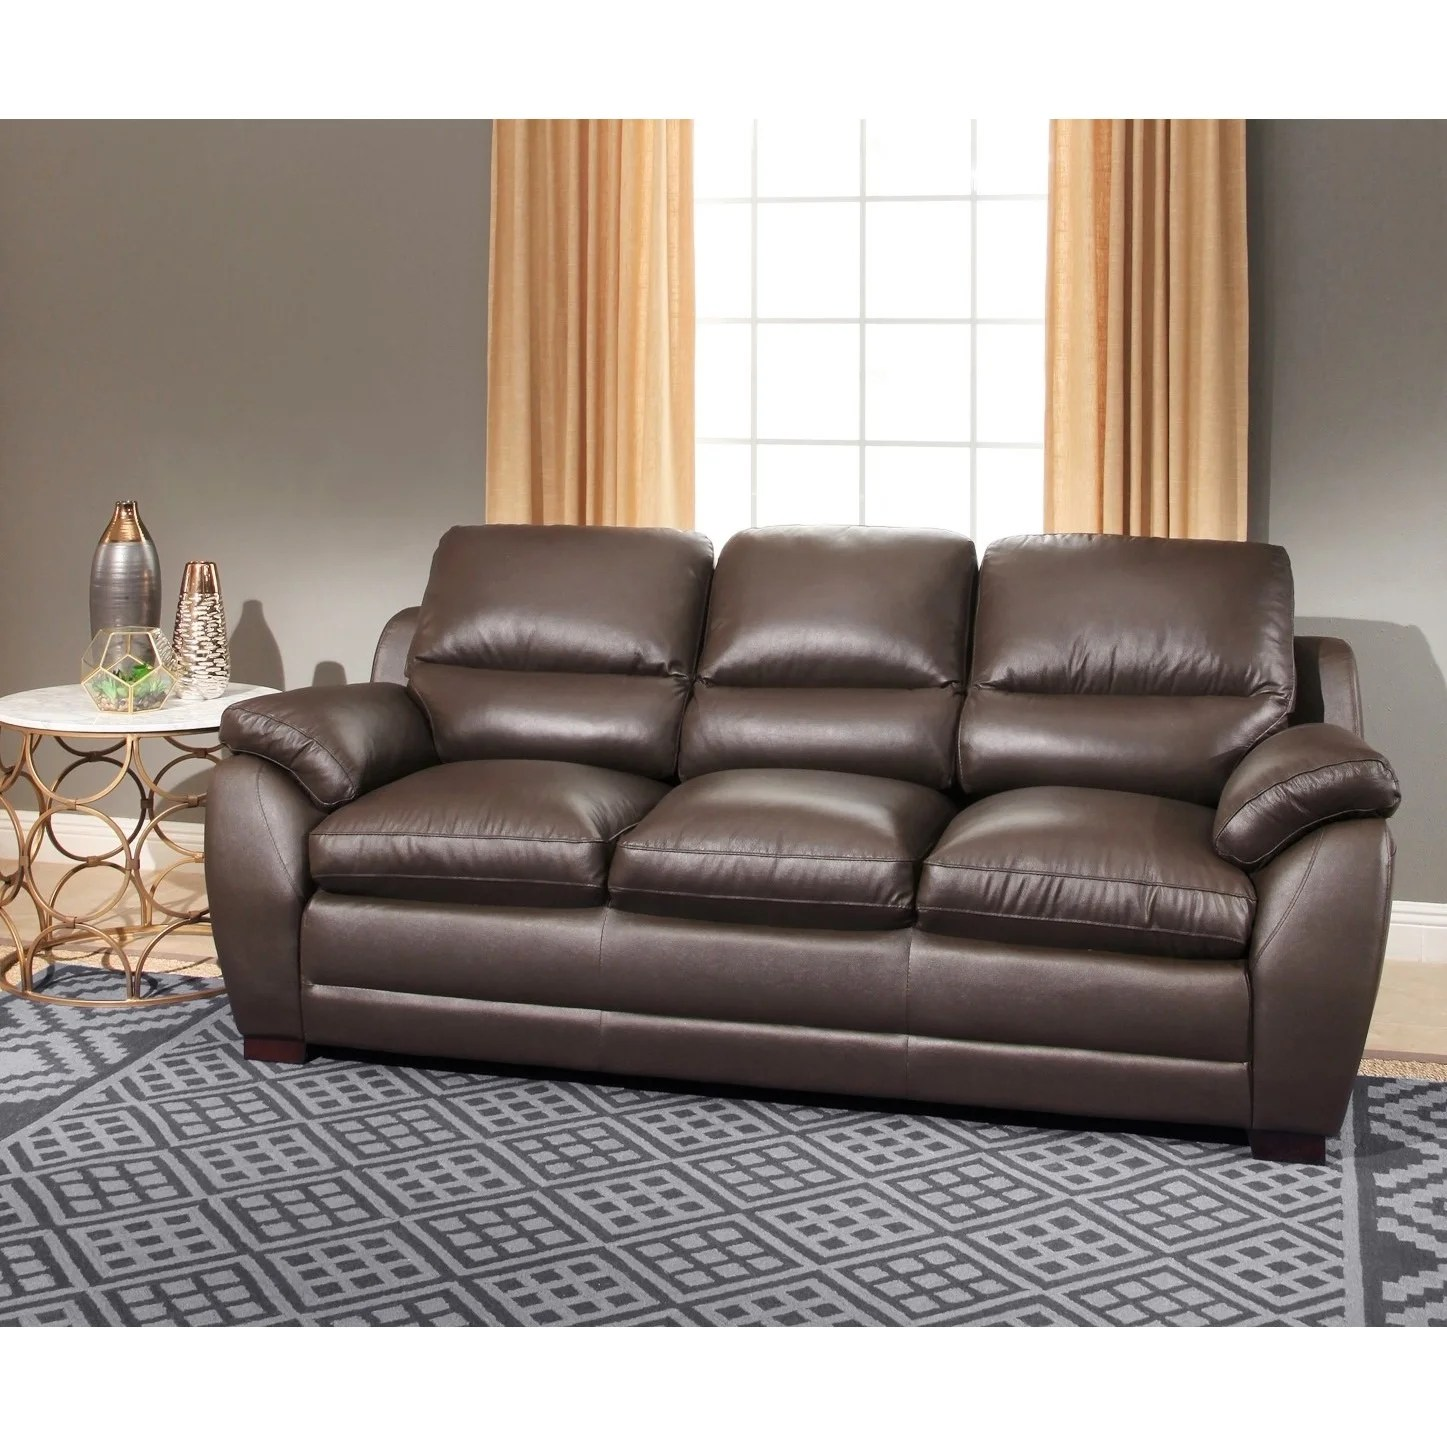 Best Kitchen Gallery: Abbyson Monarch 3 Piece Top Grain Leather Sofa Set Free Shipping of Leather Sofa Set  on rachelxblog.com